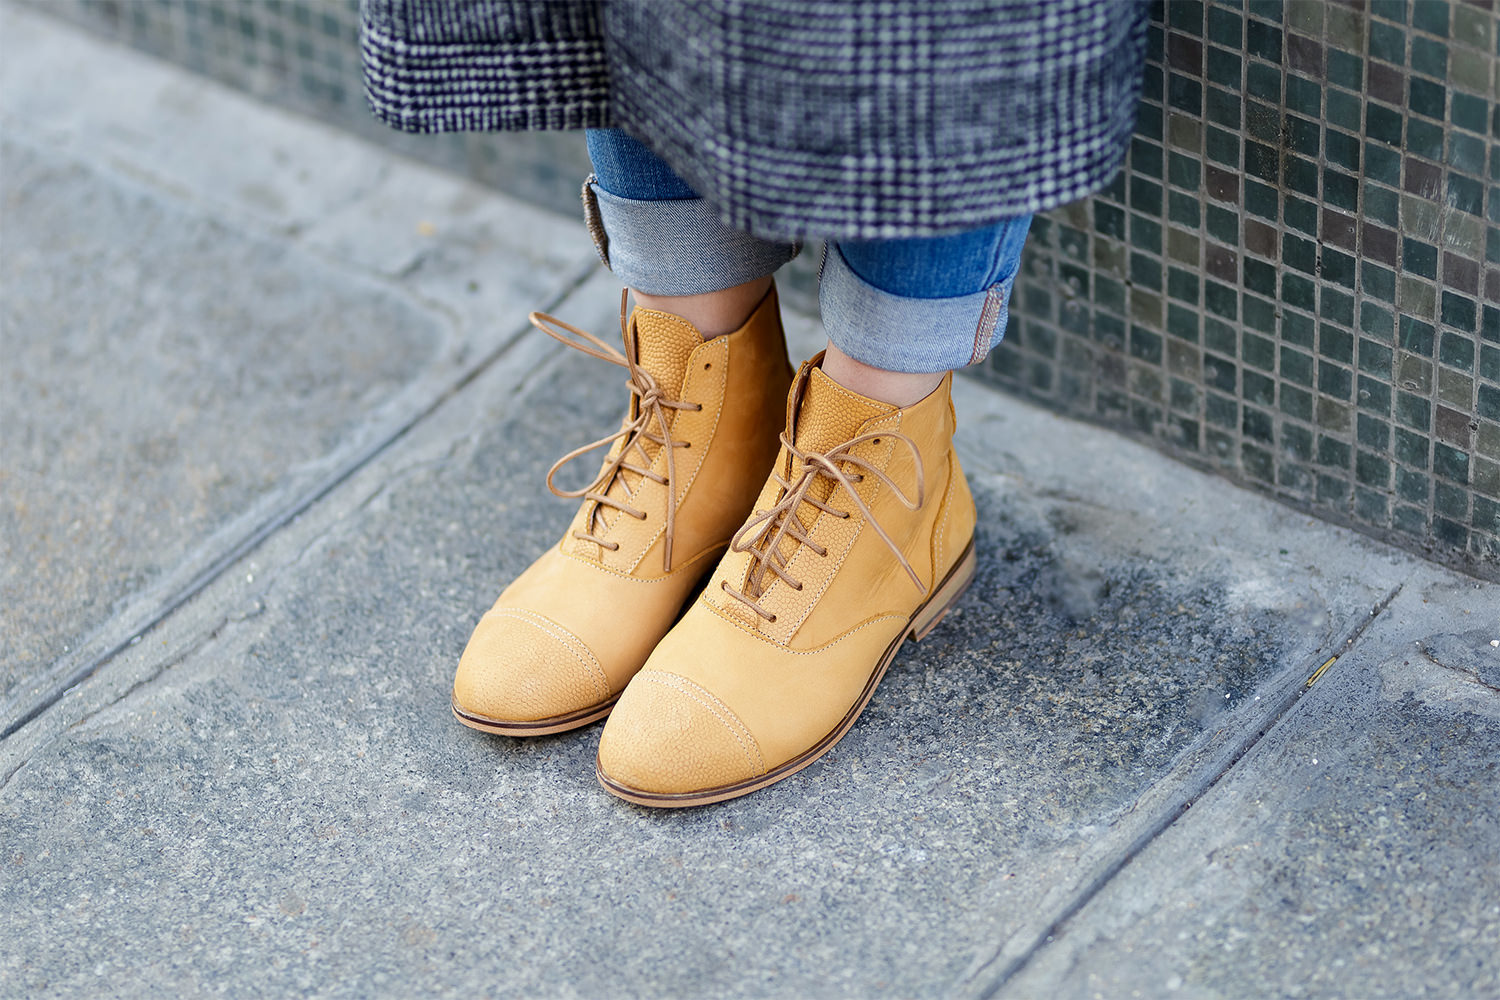 How to wear yellow boots